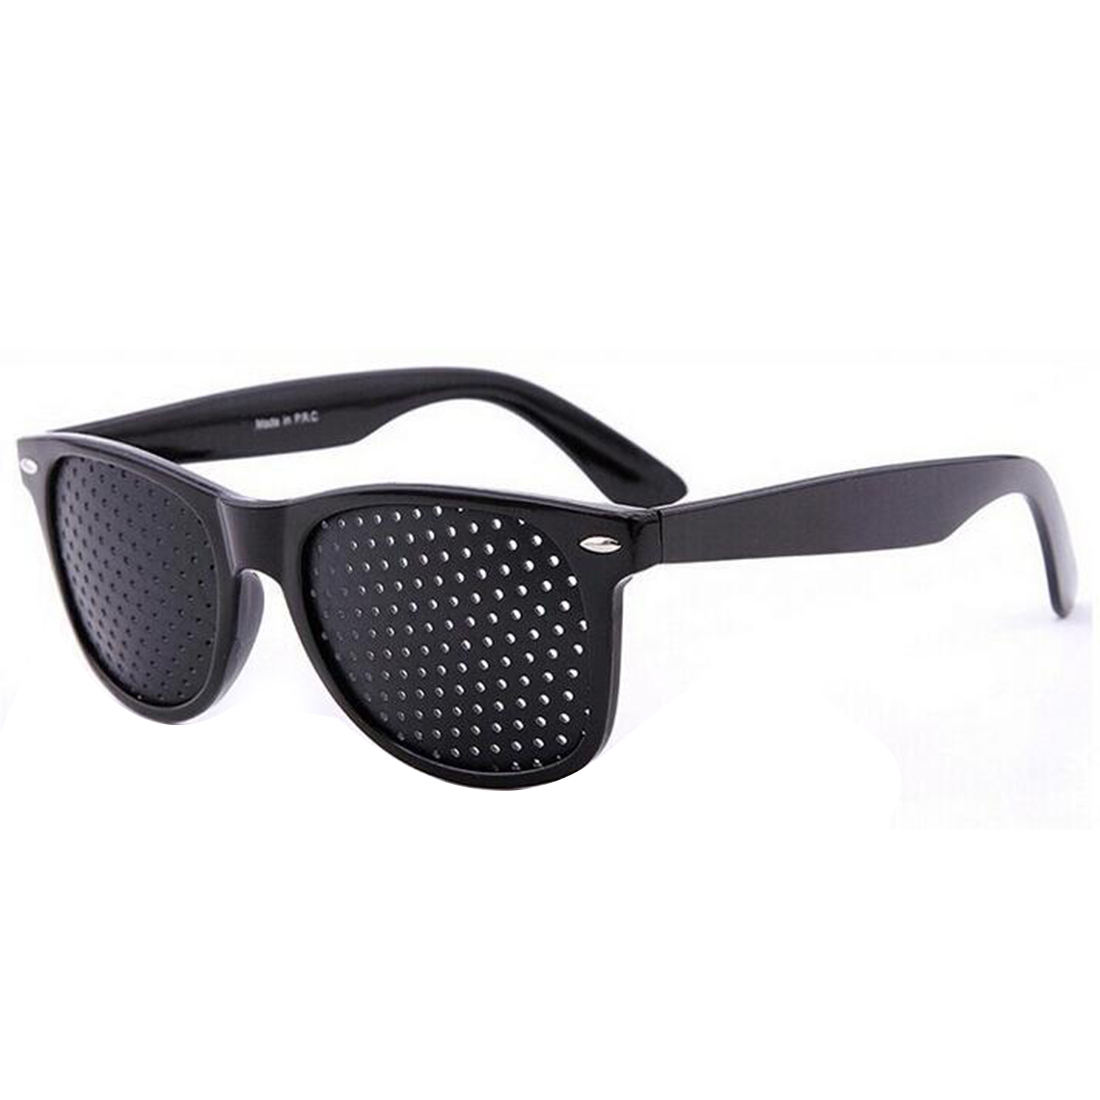 Vision Care Pin Hole Sunglasses Men Women Anti Myopia Eye